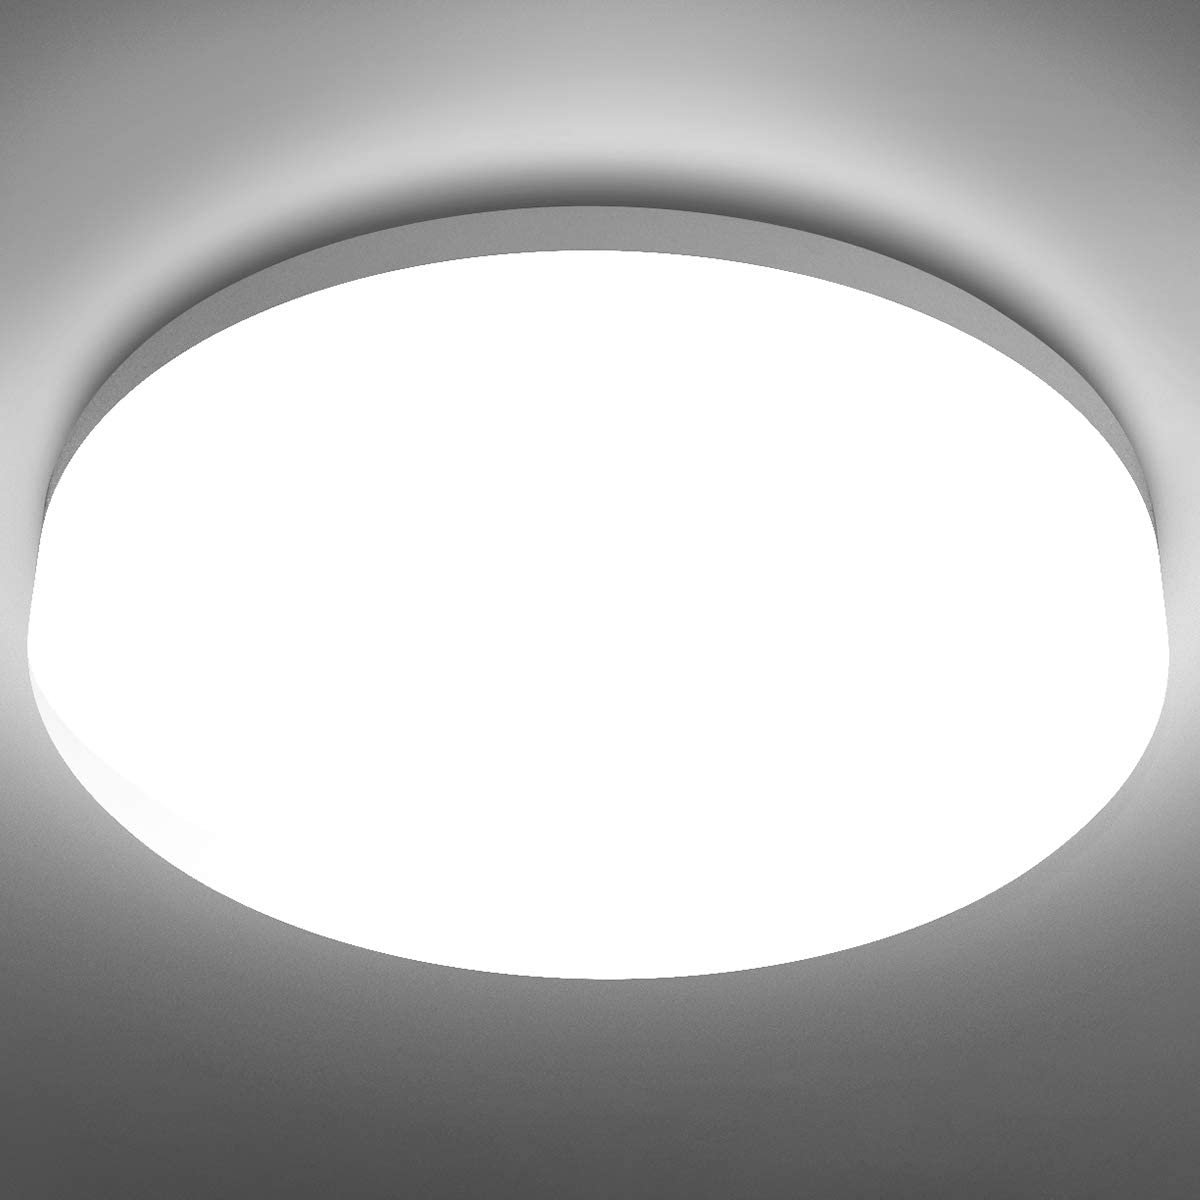 Le Flush Mount Ceiling Light Fixture Waterproof 24w Led Ceiling Light 2x100w Equivalent 2400lm 13 Inch 5000k Bright White Ceiling Lamp For Bathroom Kitchen Bedroom Porch Hallway Non Dimmable